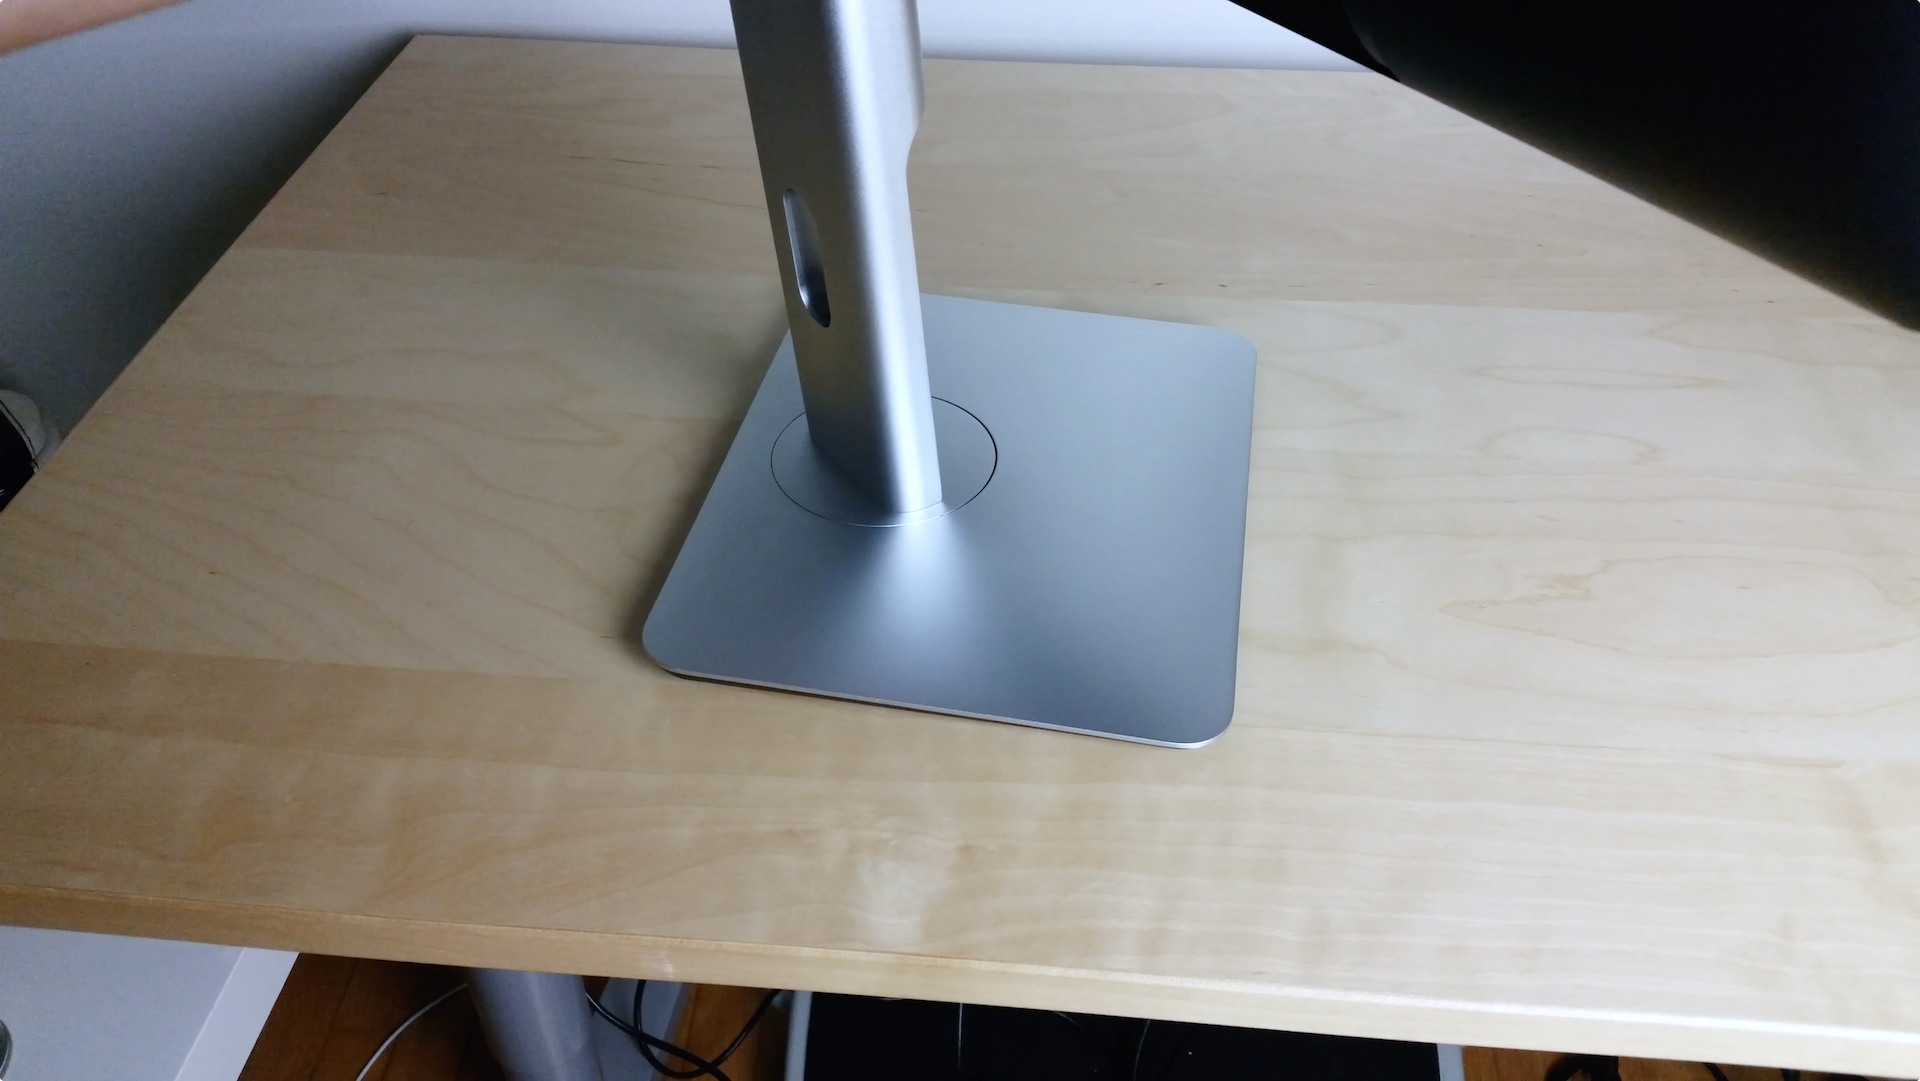 Dell UP2414Q Stand